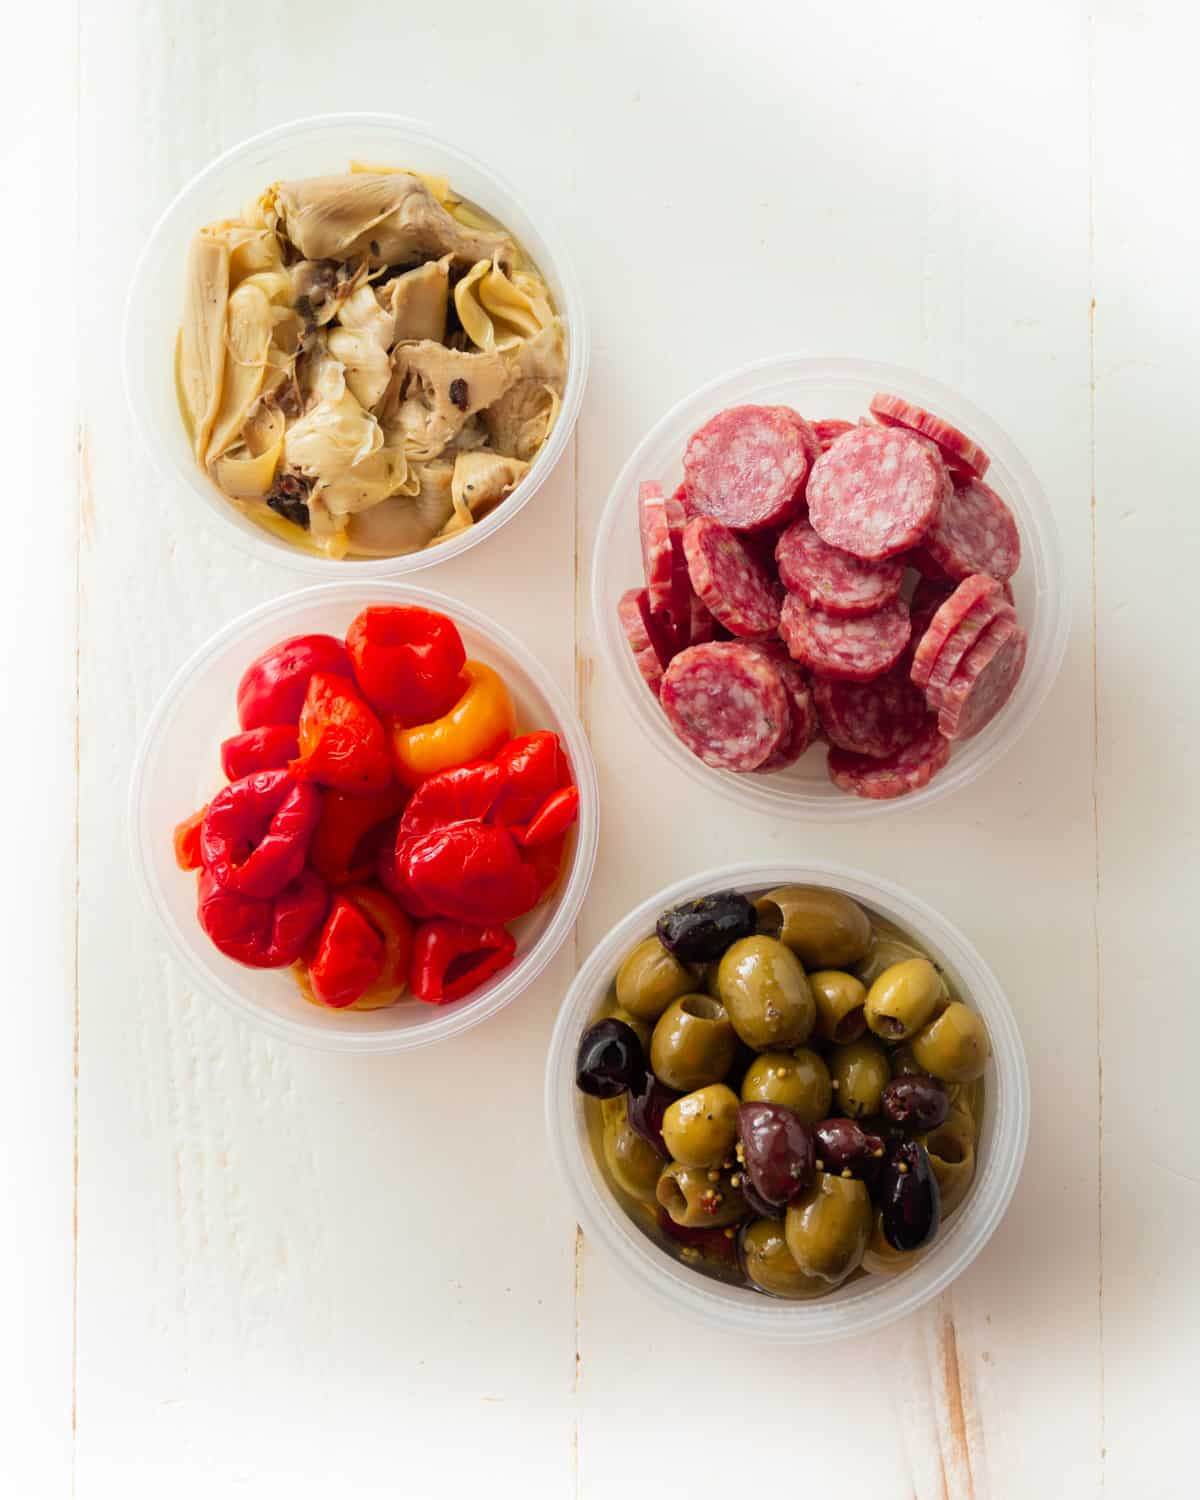 peppers, tortellini, sausage and olives in white bowls